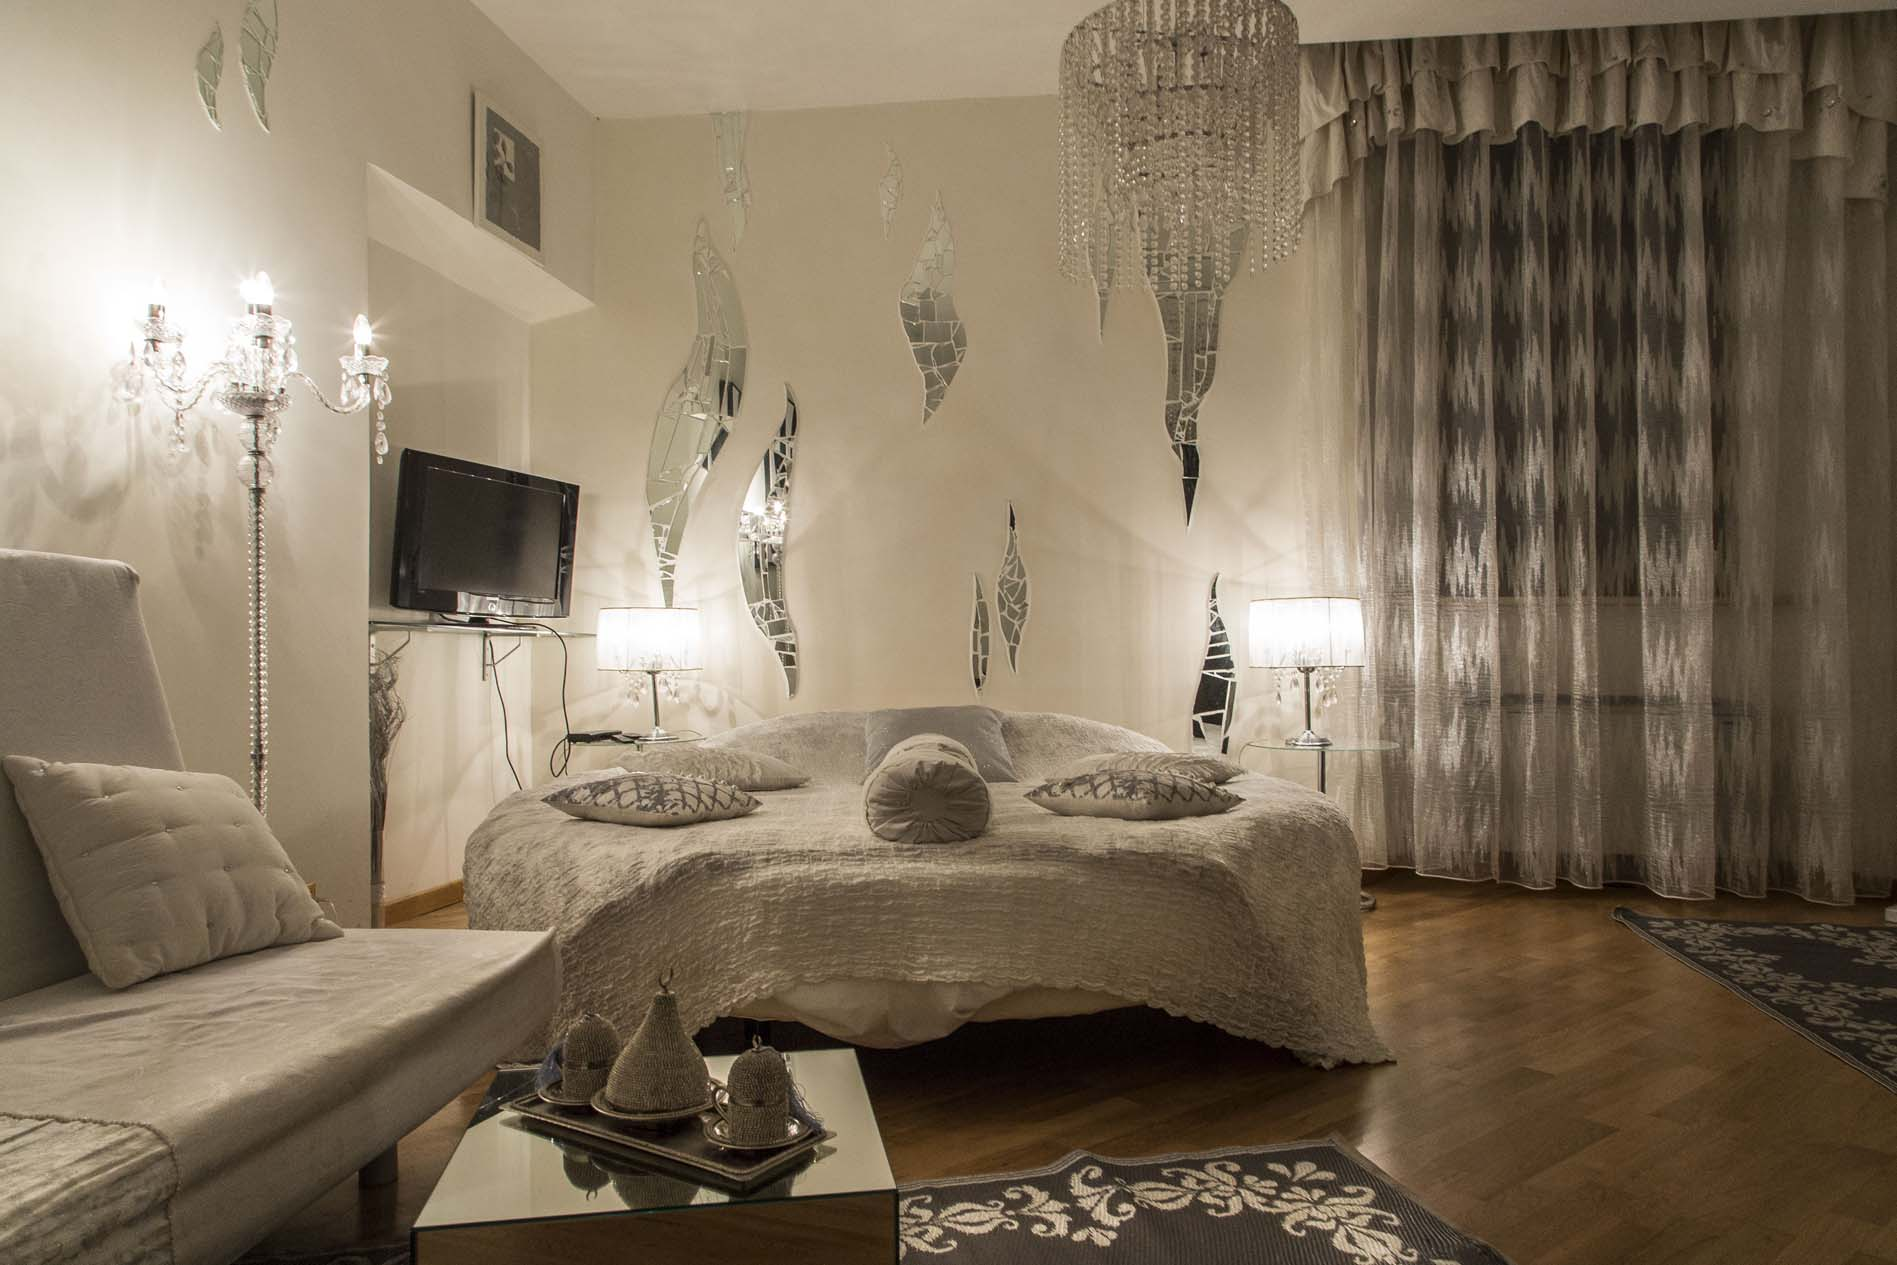 cristal room- Bed & Breakfast a Tivoli